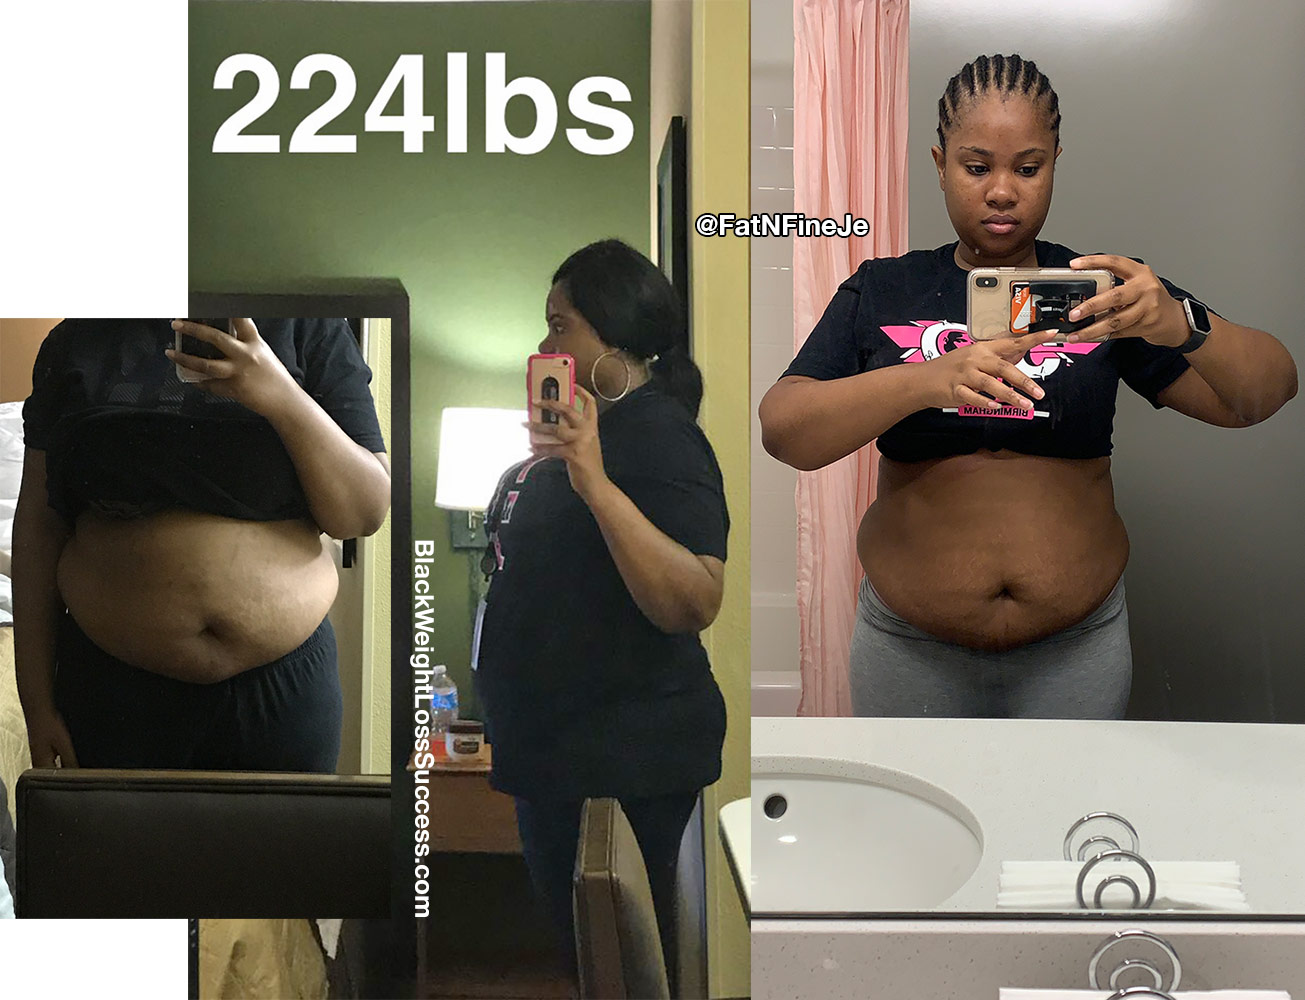 Je'Tara weight loss story